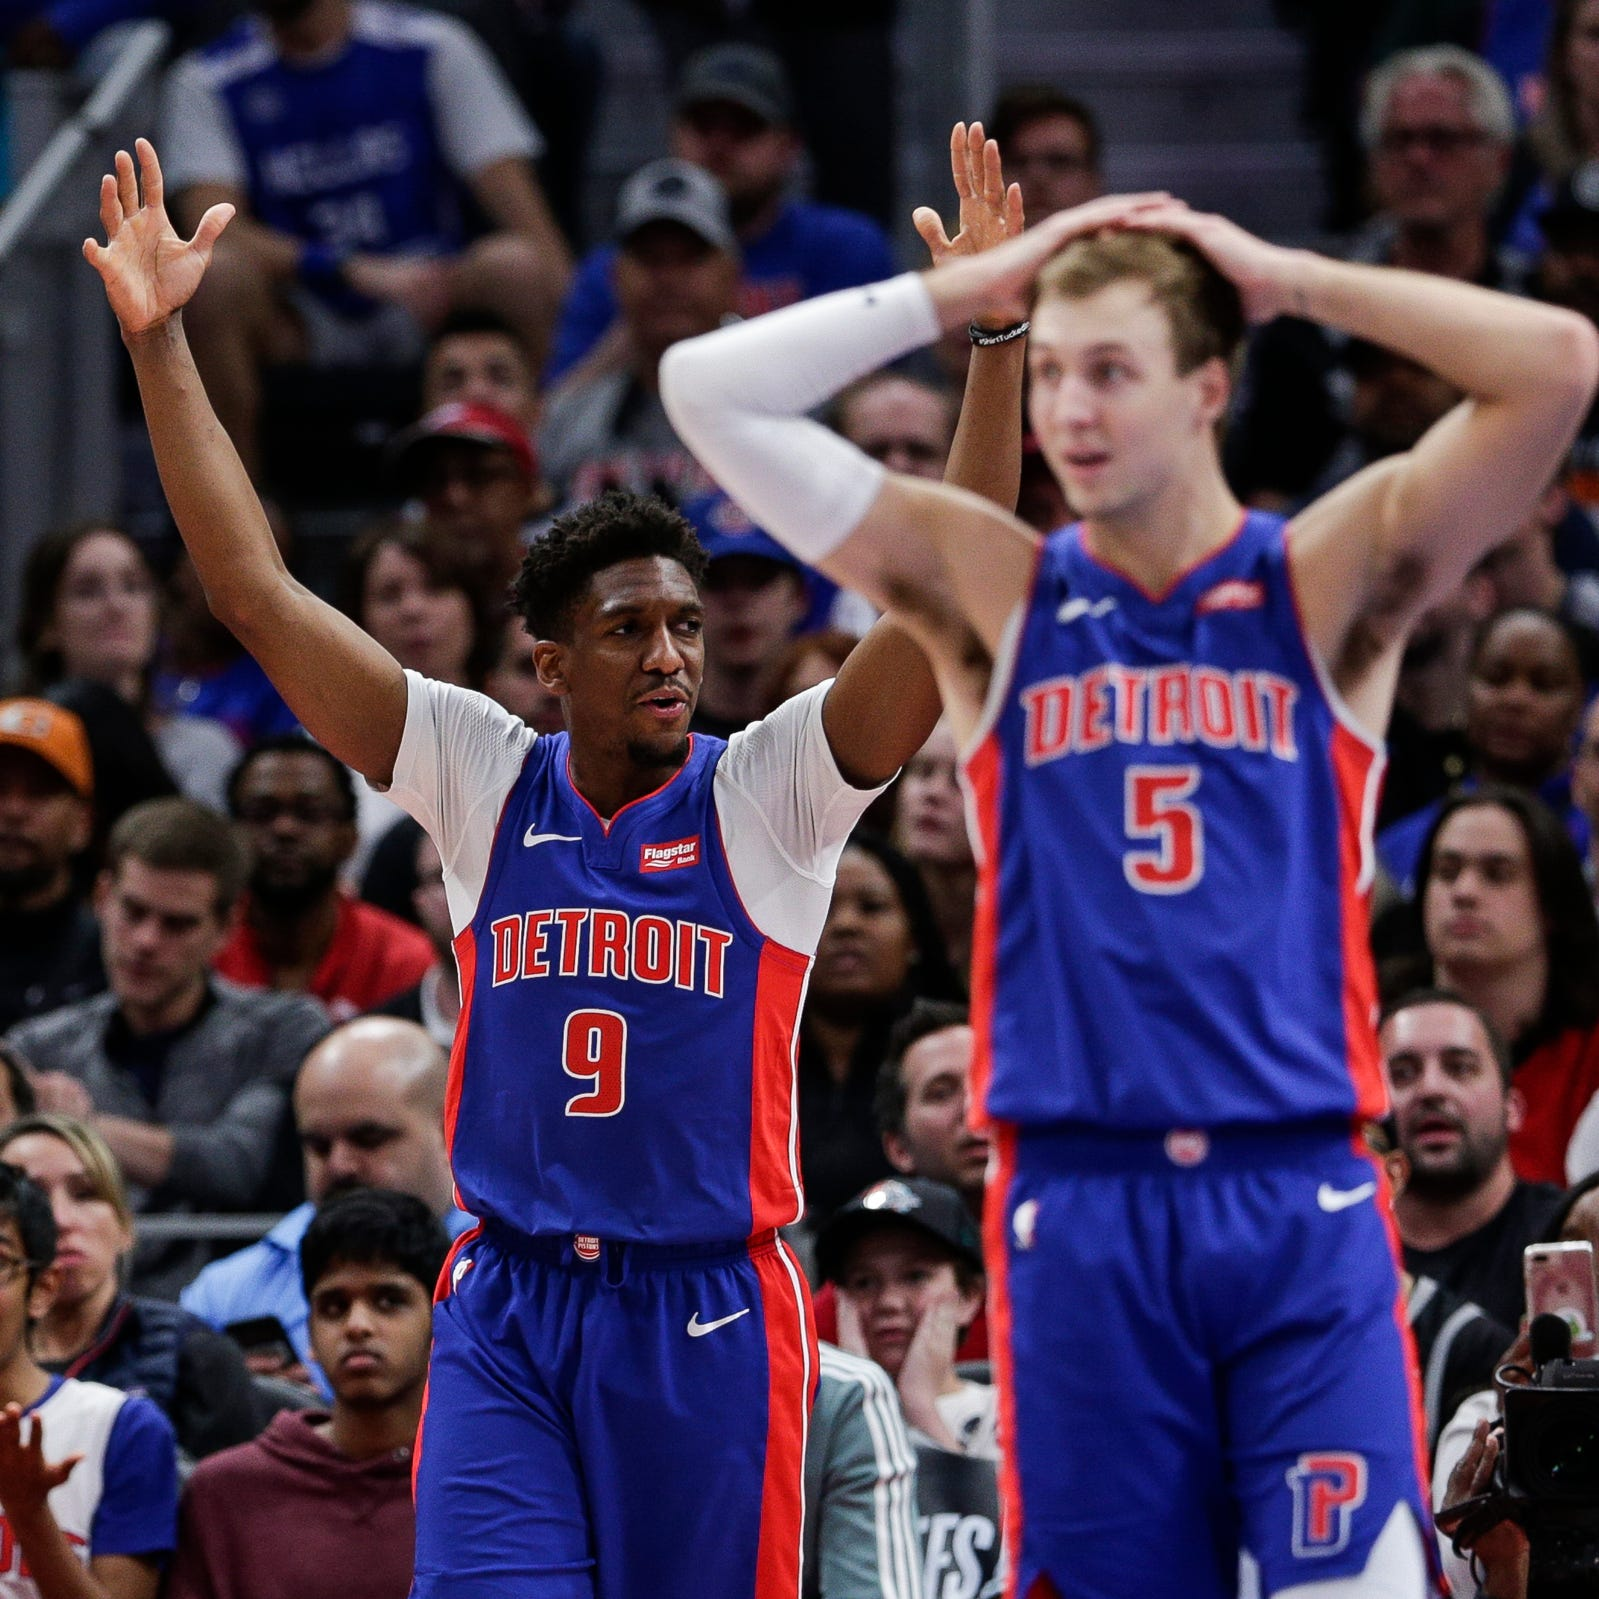 Detroit Pistons hope progress has been made, but real work begins this offseason